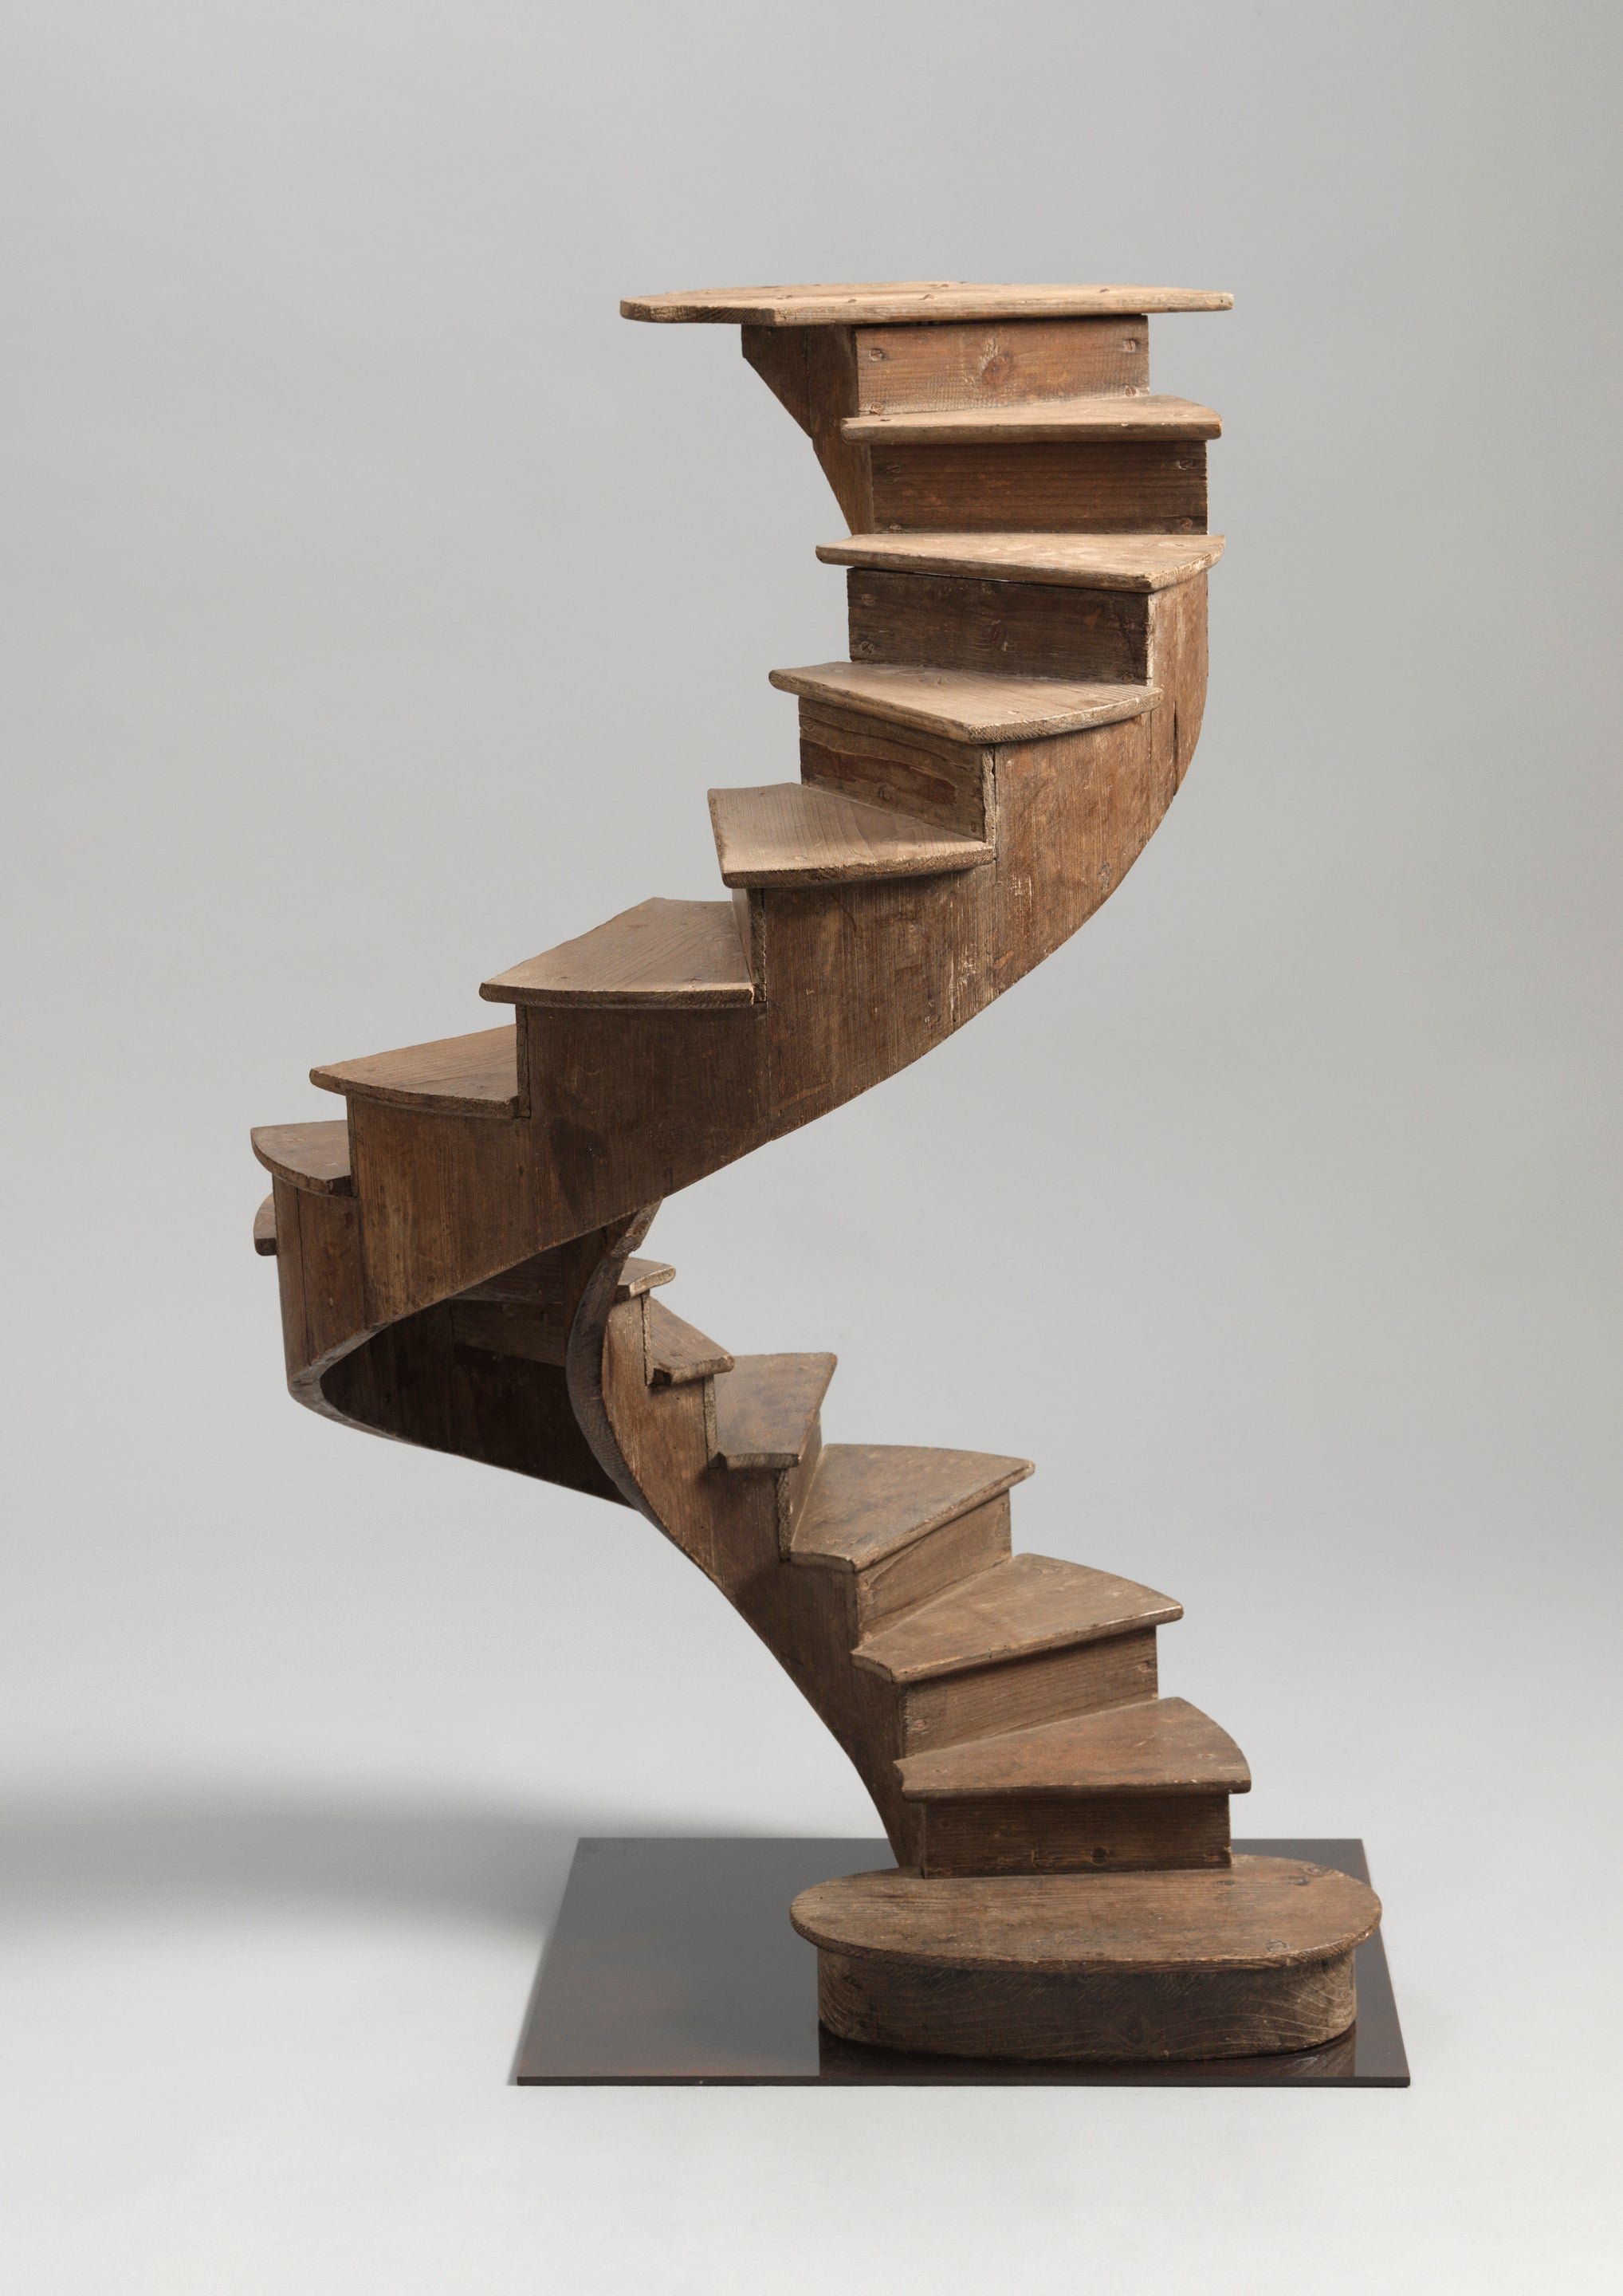 Unsual Early Architectural Model Staircase